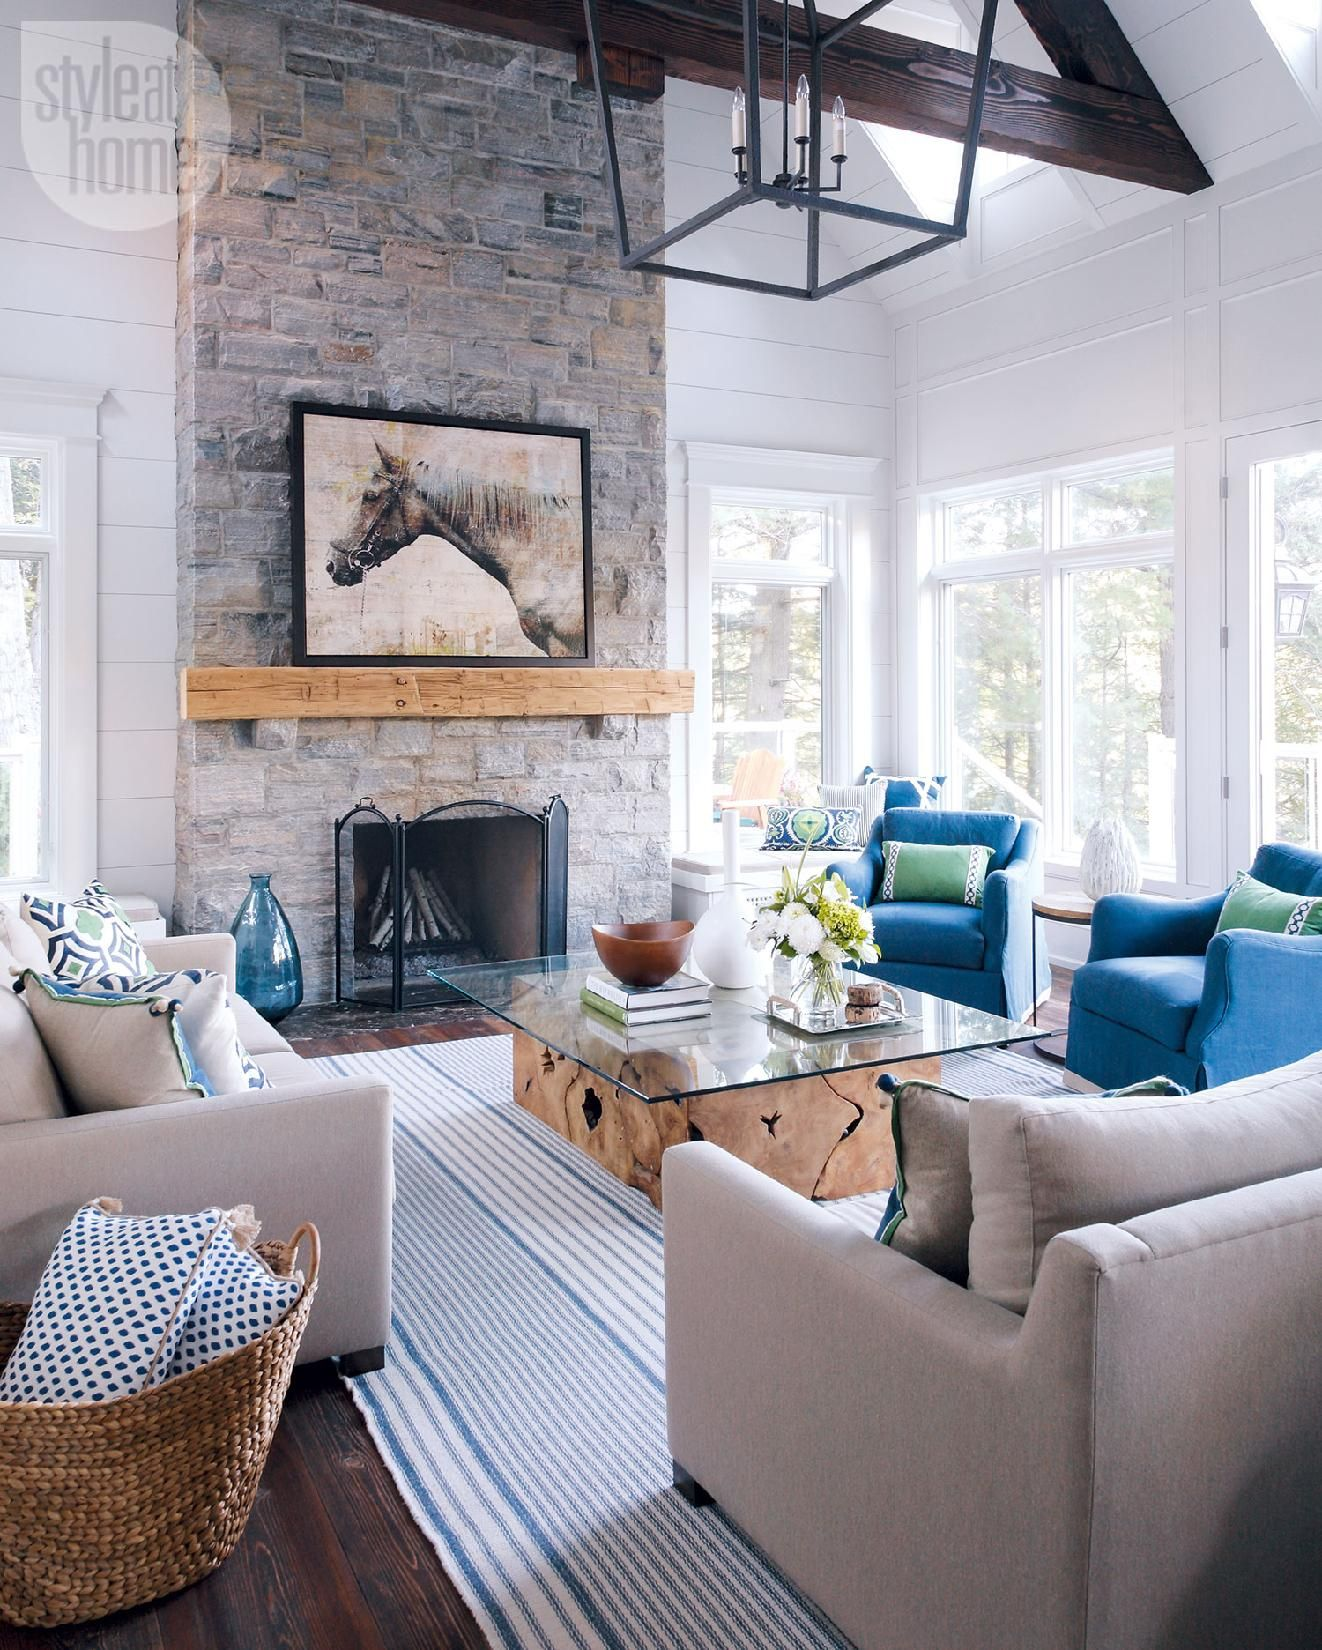 Cottage Home Decorating: 25 Stylish Summer Homes In 2019